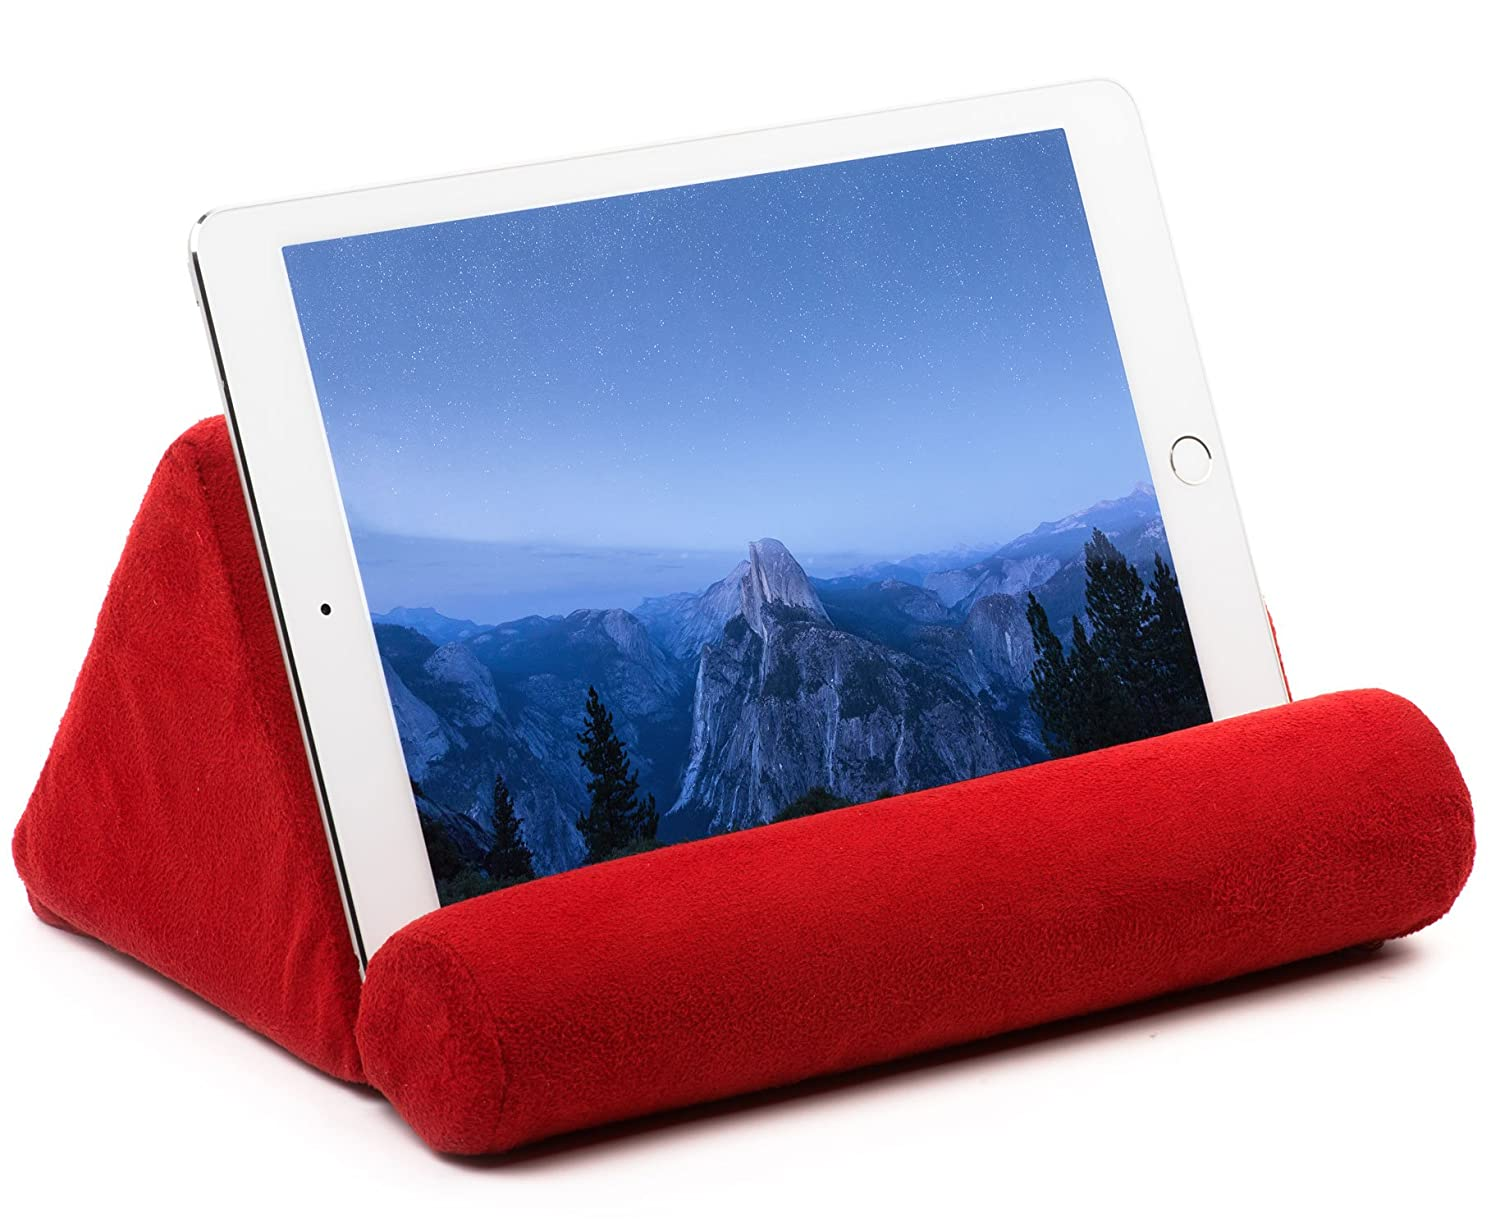 Bed rest pillow walmart - Tablet Pillow For Galaxy And Ipad Plush Microfiber Mini Tablet Computer Holder Sofa Reading Stand Self Standing Or Use On Lap Bed Sofa Couch Color Red